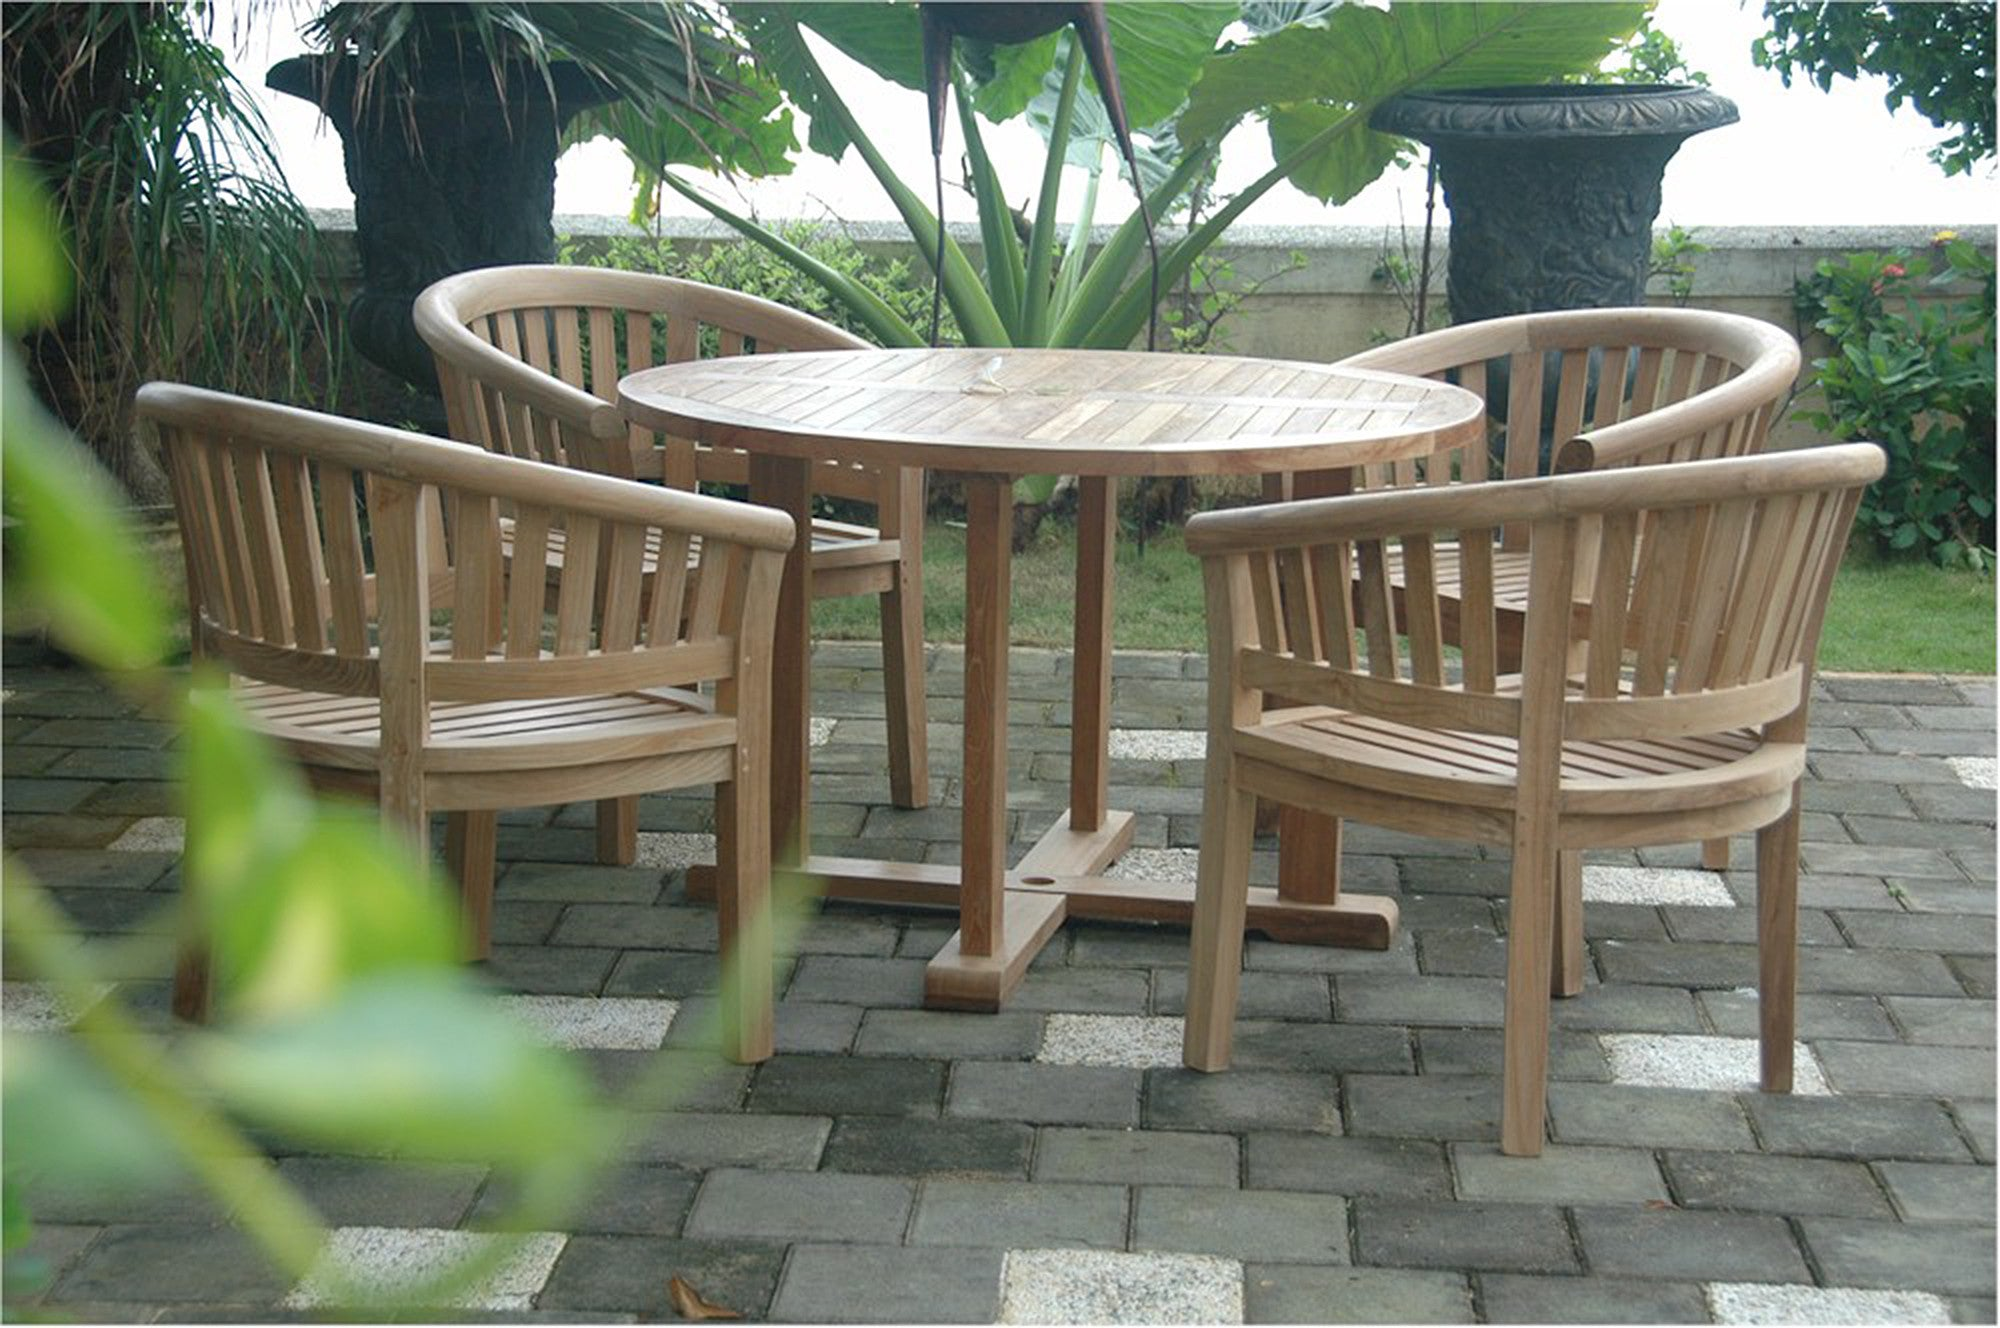 Anderson Round Table Armchair PcTeak Dining Set Teakwood - Anderson round table